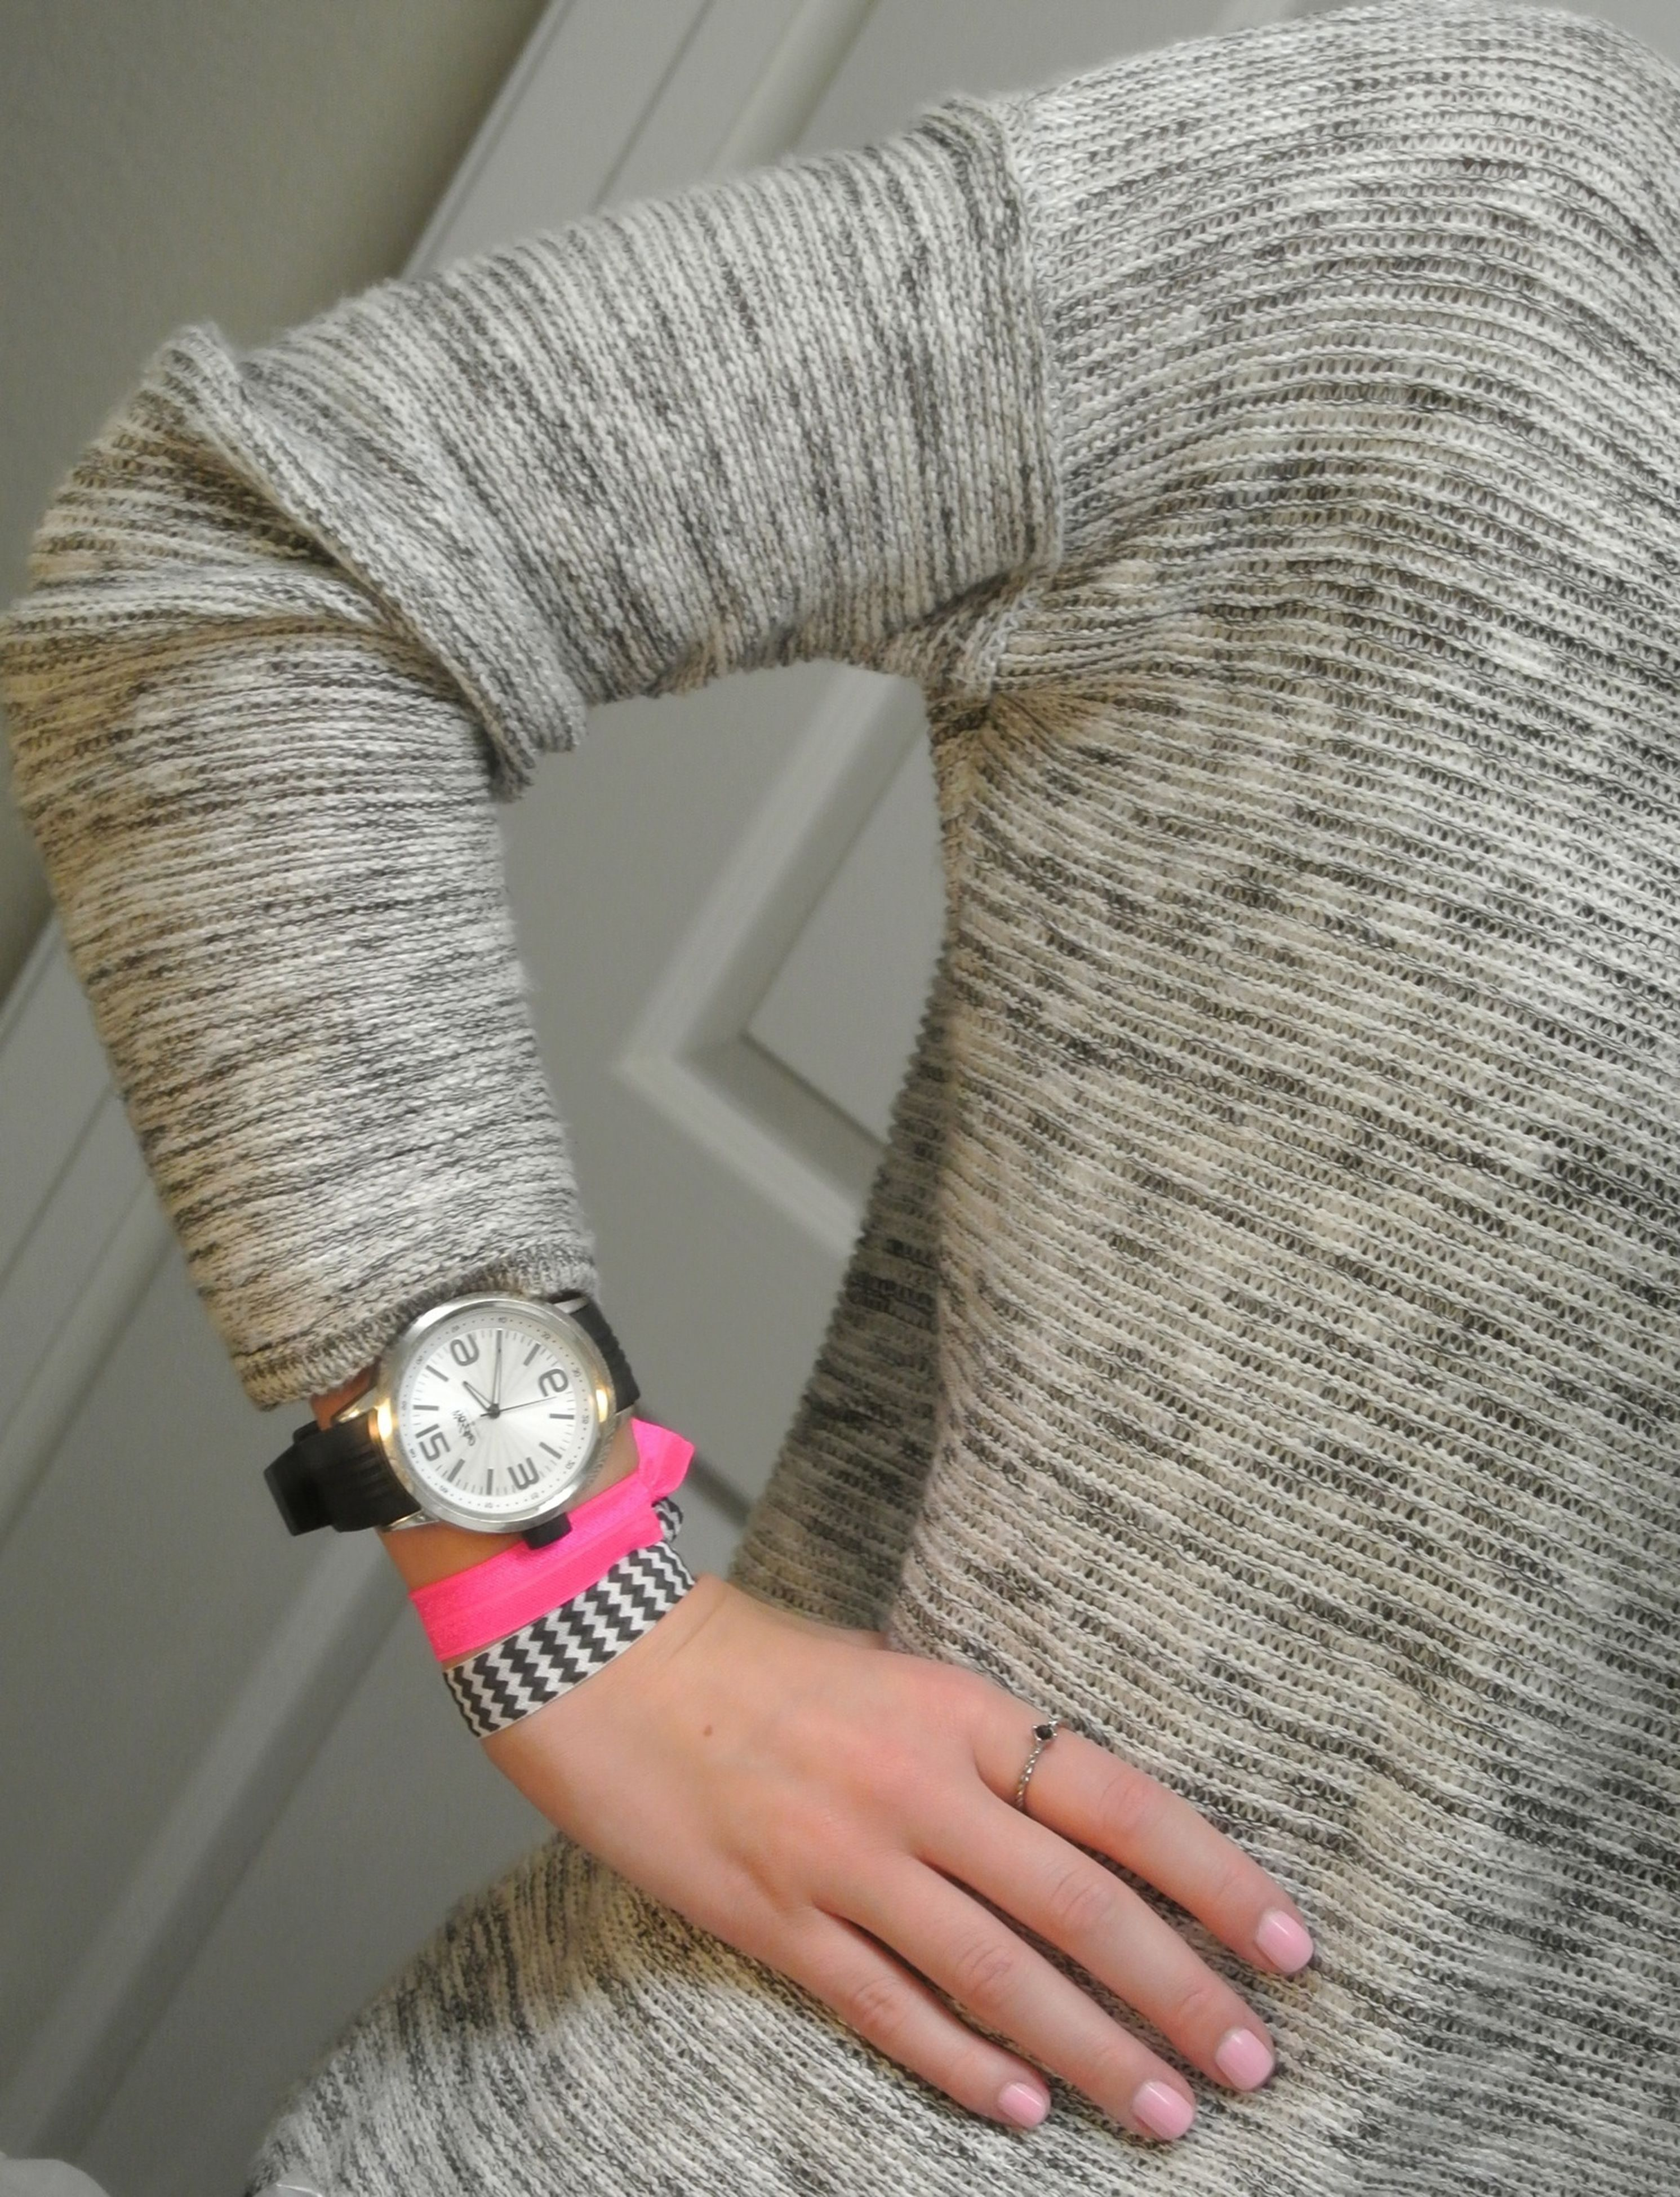 indoors, person, holding, part of, lifestyles, close-up, cropped, leisure activity, high angle view, human finger, fashion, unrecognizable person, wall - building feature, men, midsection, casual clothing